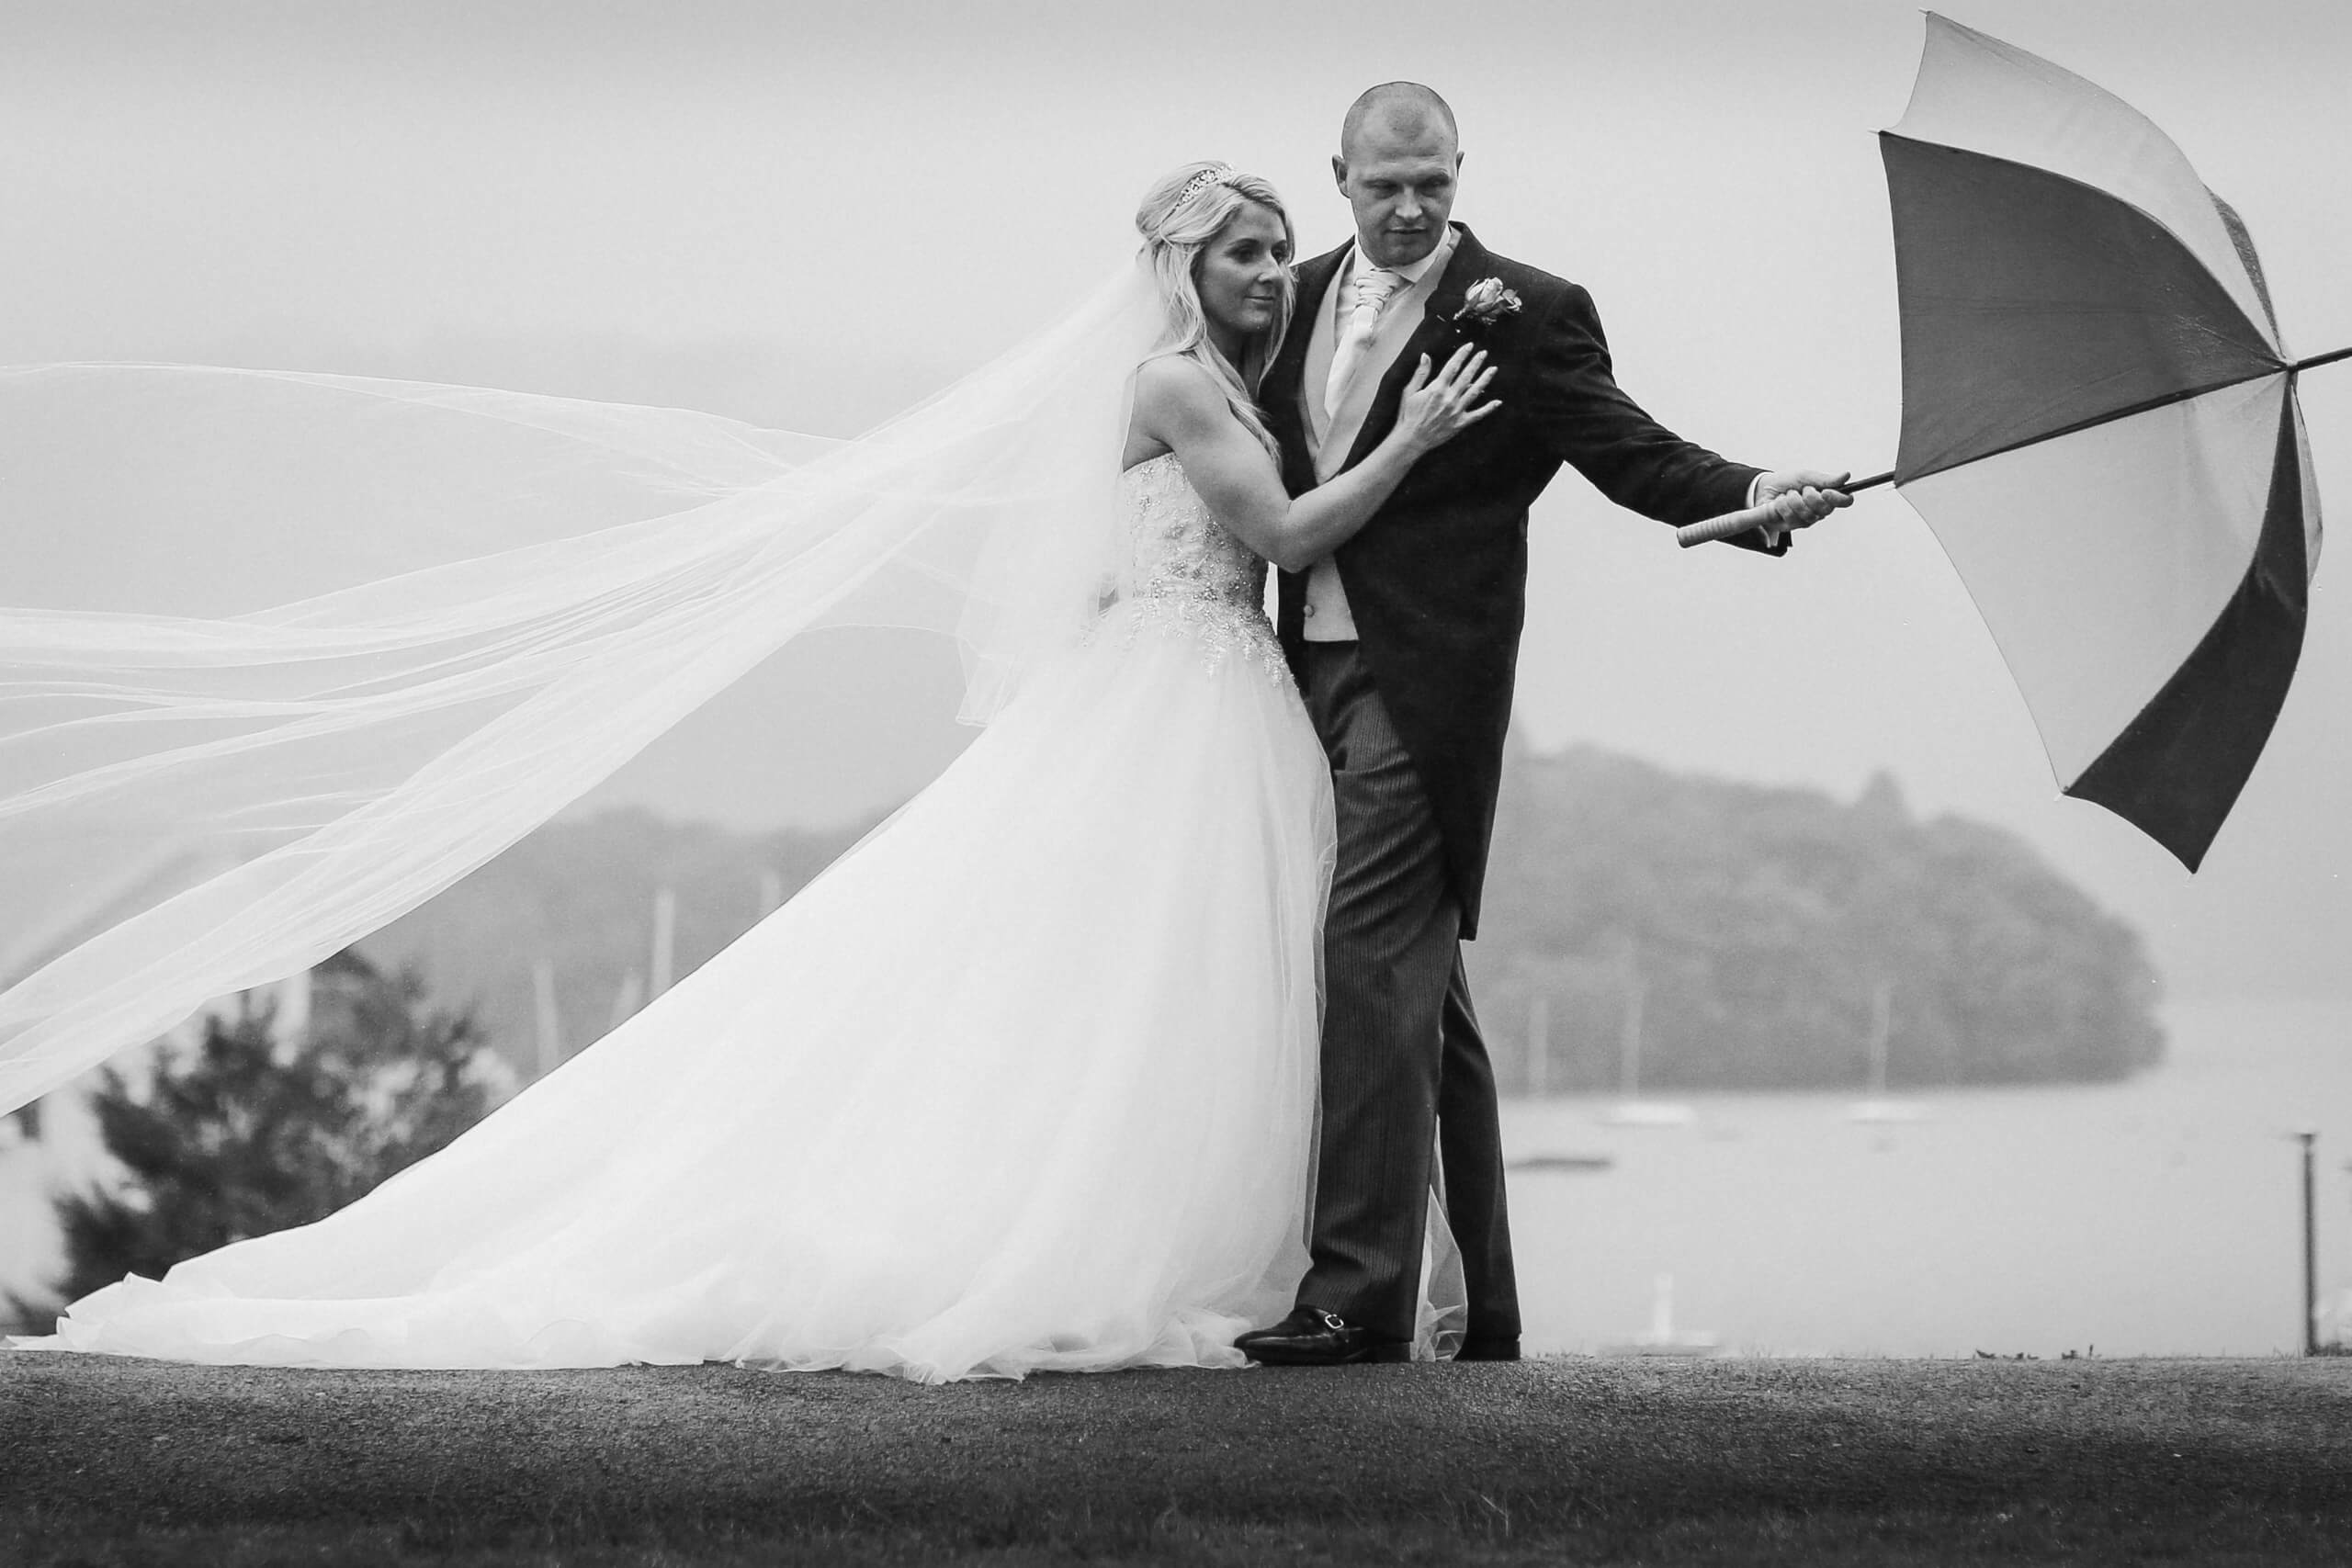 The Belsfield Hotel Wedding photography, Bride and groom with umbrella in rain